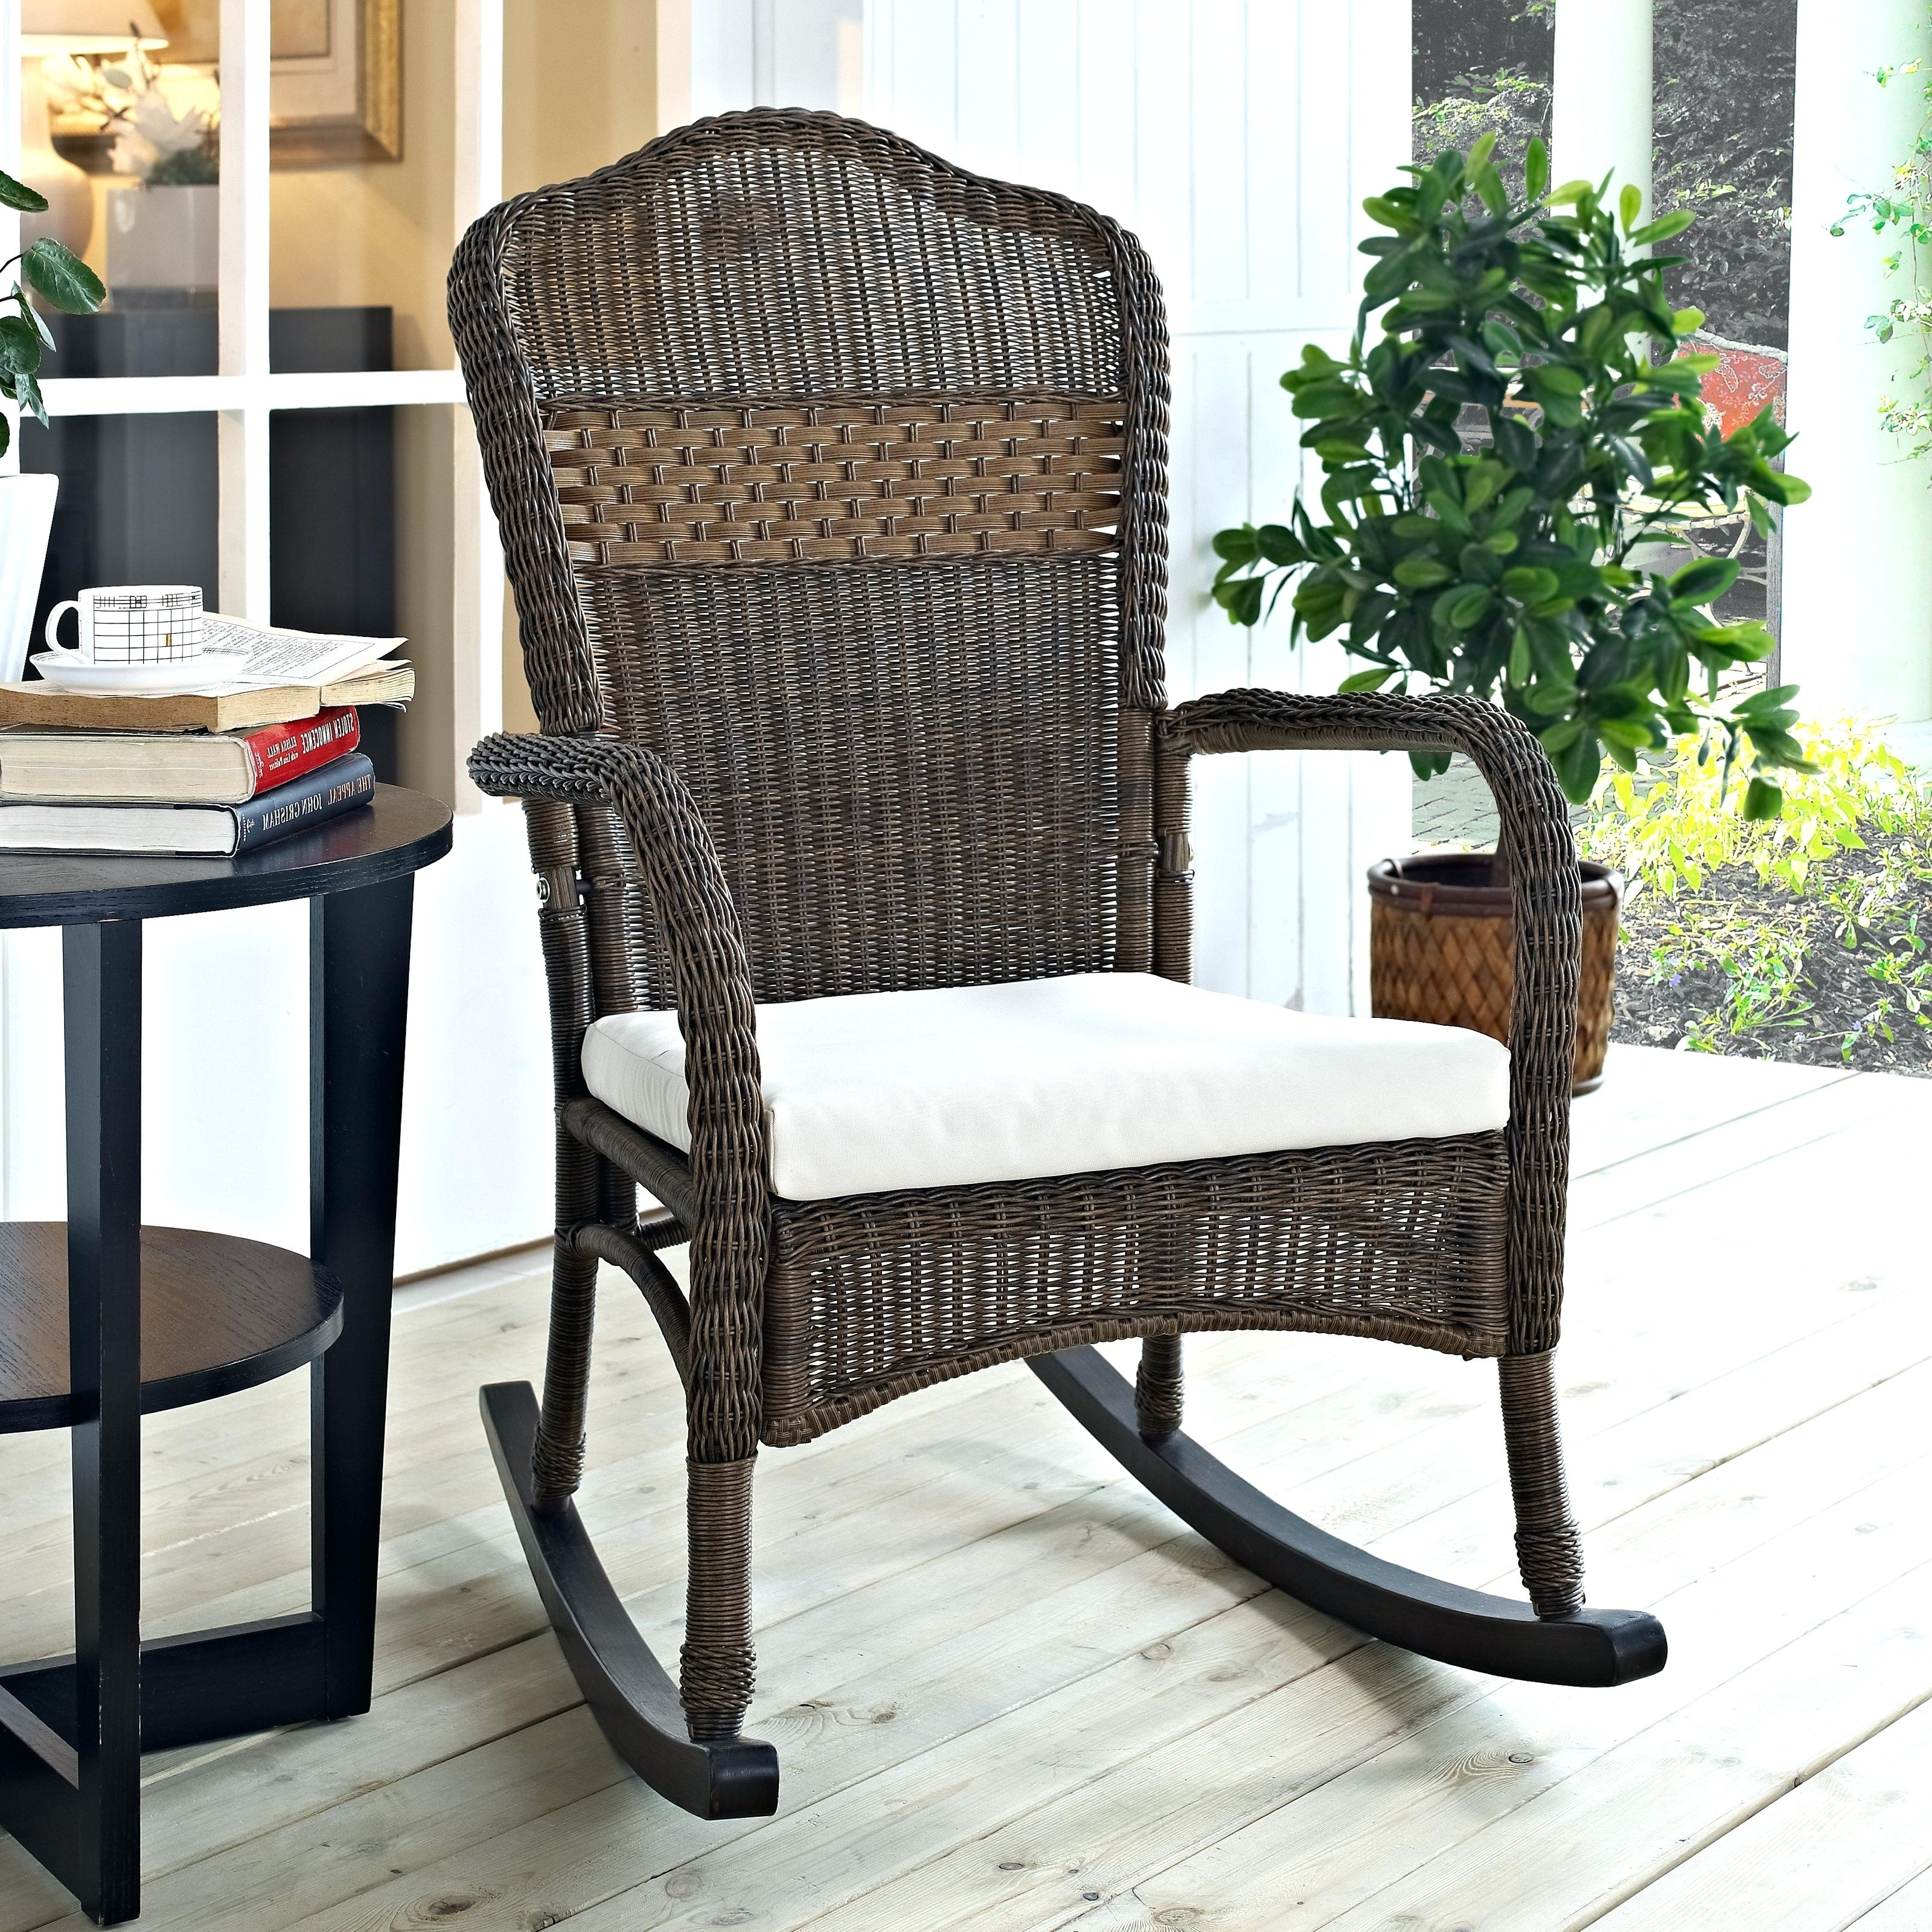 Modern Outdoor Rocking Chair Modern Outdoor Rocking Chairs Dining Intended For 2017 Outdoor Rocking Chairs With Table (View 13 of 15)